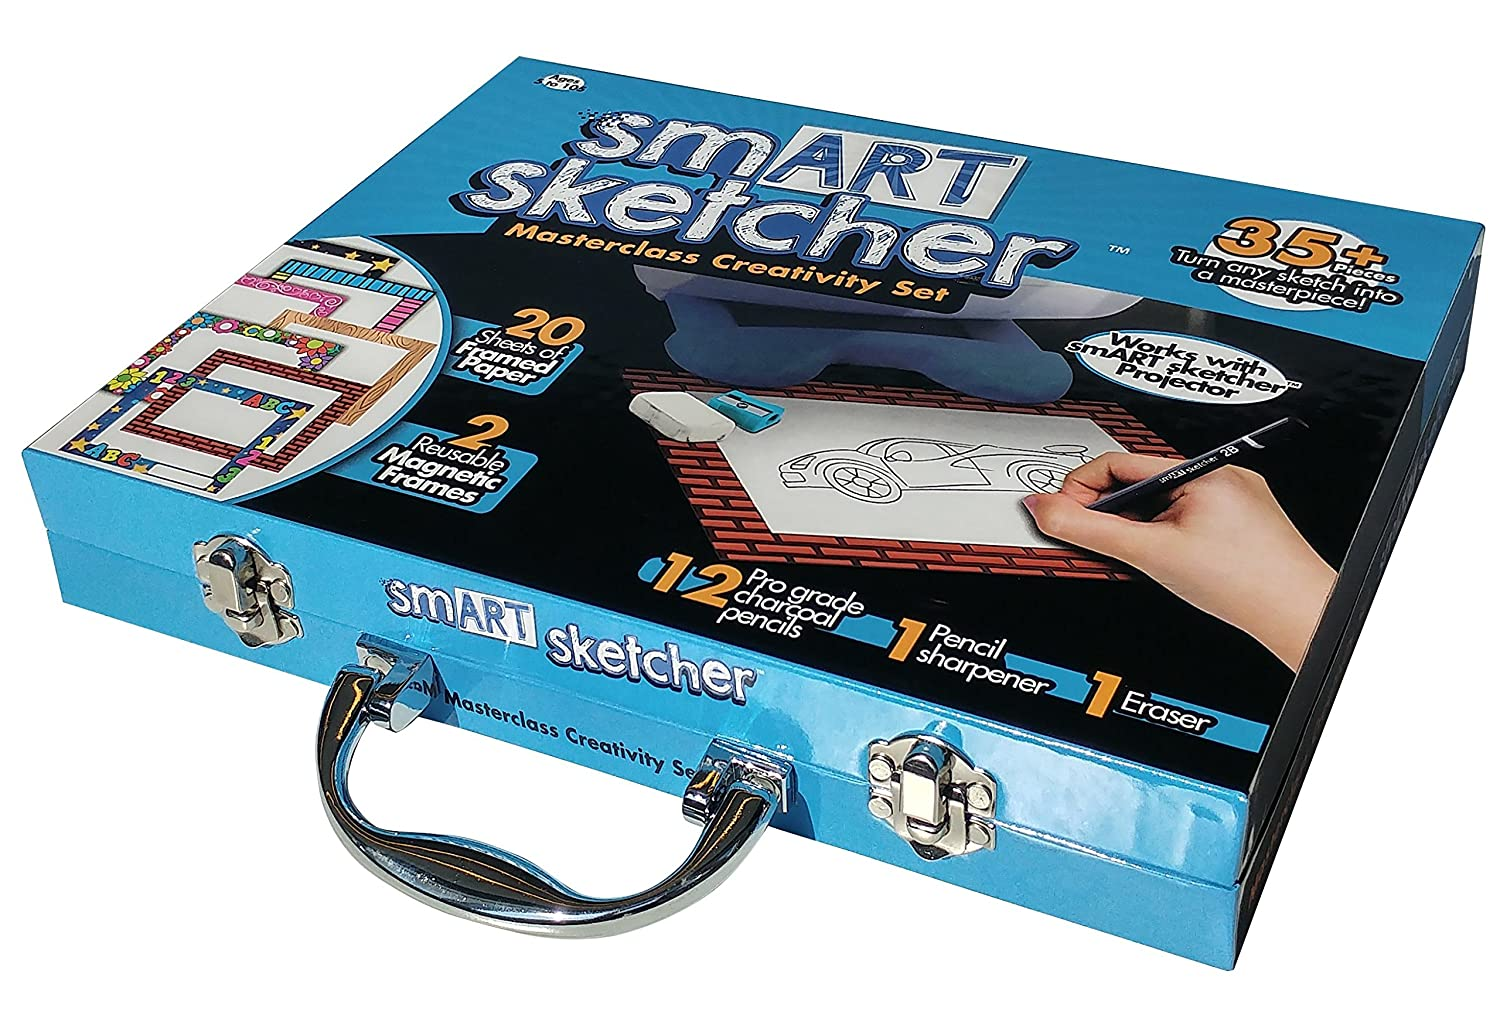 smART sketcher - Masterclass Set